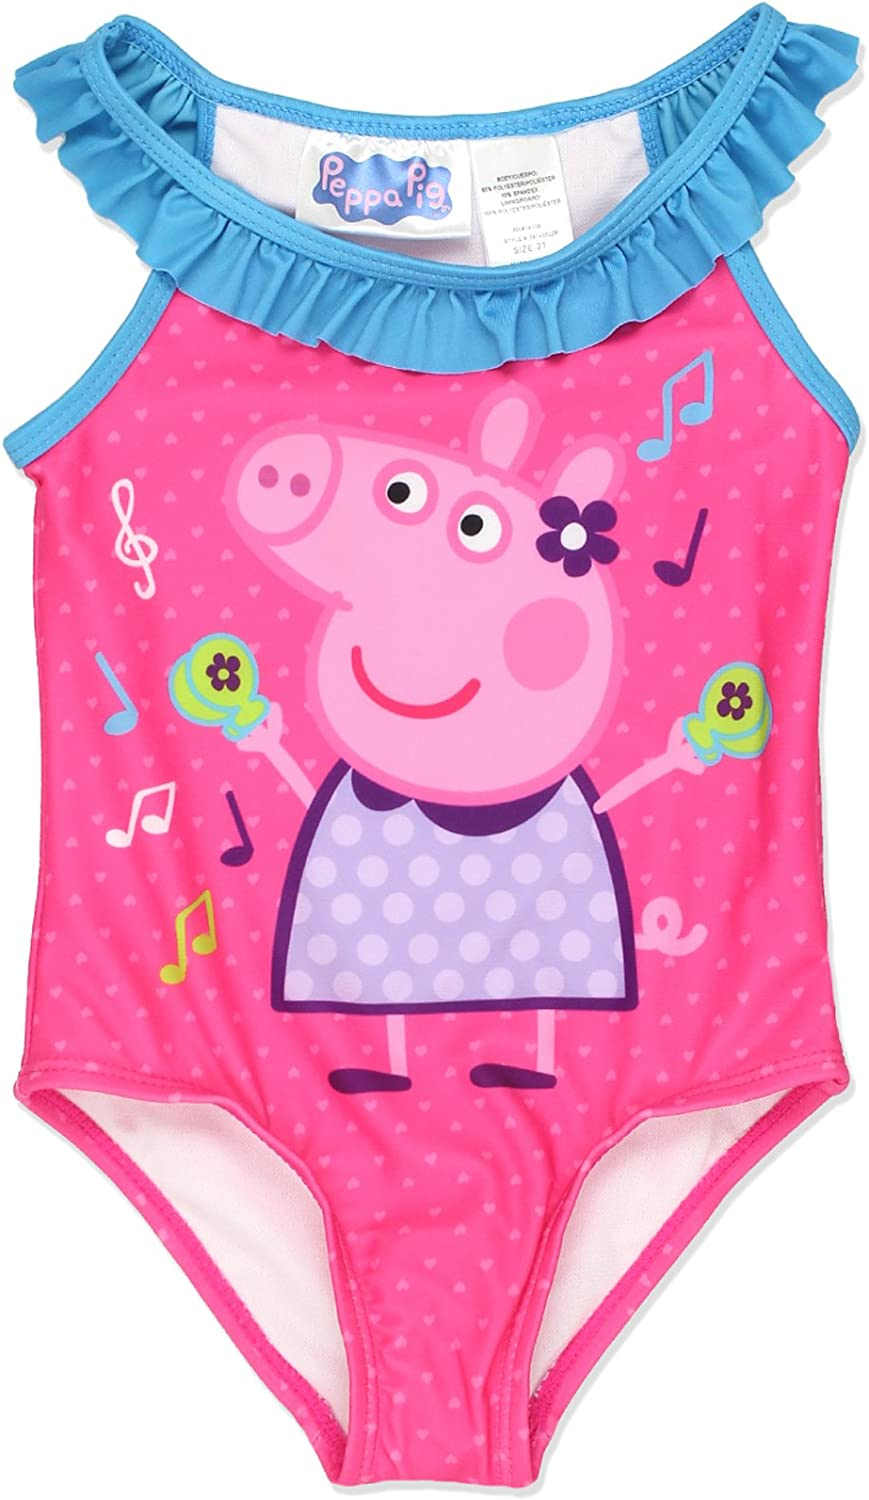 Lovely Girls yd peppa pig Swimming Costume Age 2-3 Years